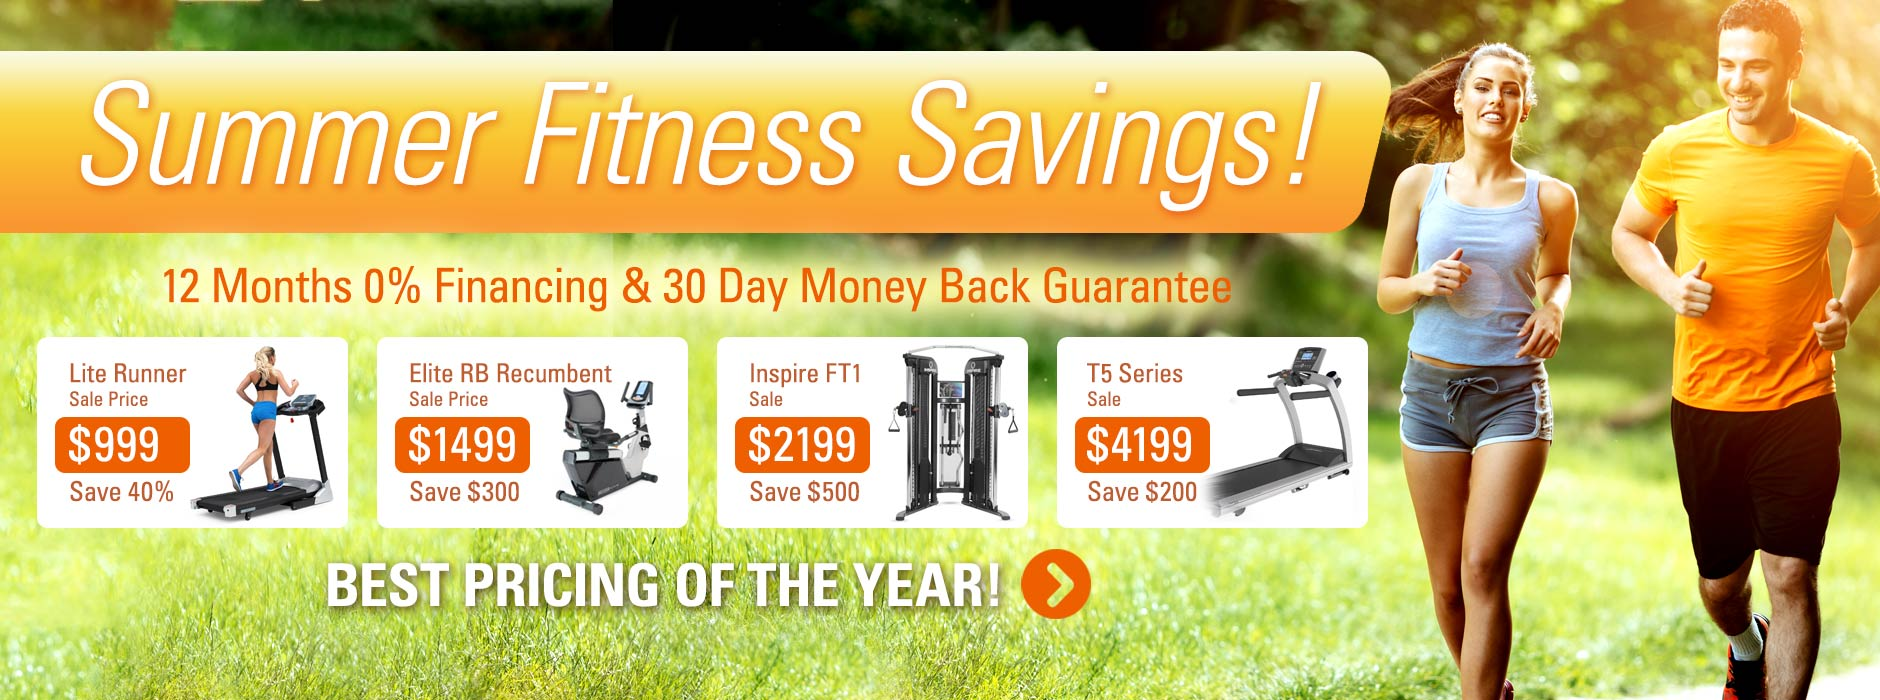 Summer Fitness Savings! 12 Months 0% Financing & 30 Day Money Back Guarantee - Best pricing of THE YEAR!